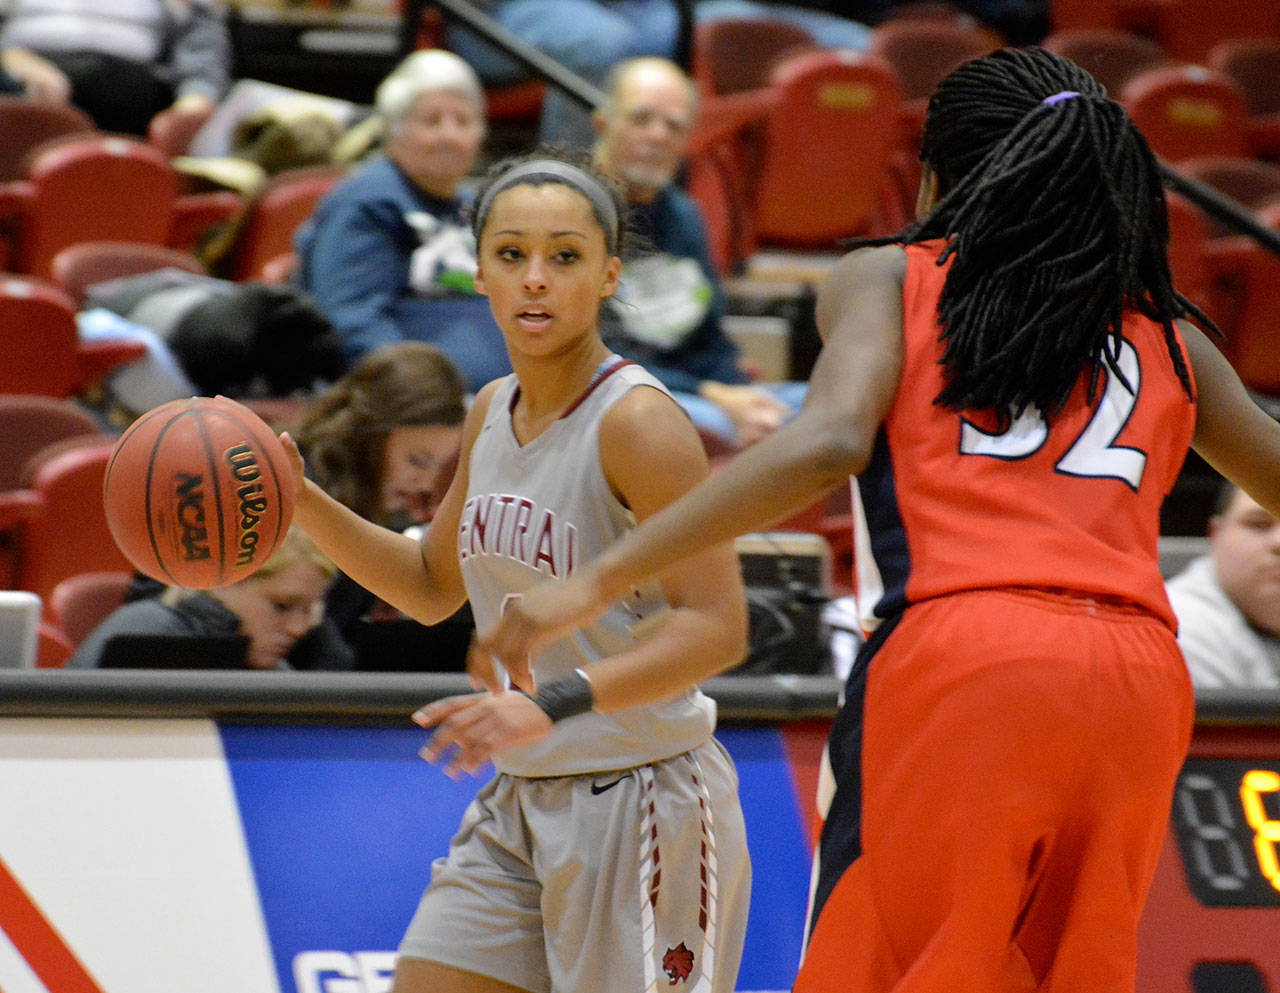 Jasmin Edwards, a Central Washington University senior guard who graduated from Lynnwood High School, looks to set a play. (Photo courtesy of Central Washington)